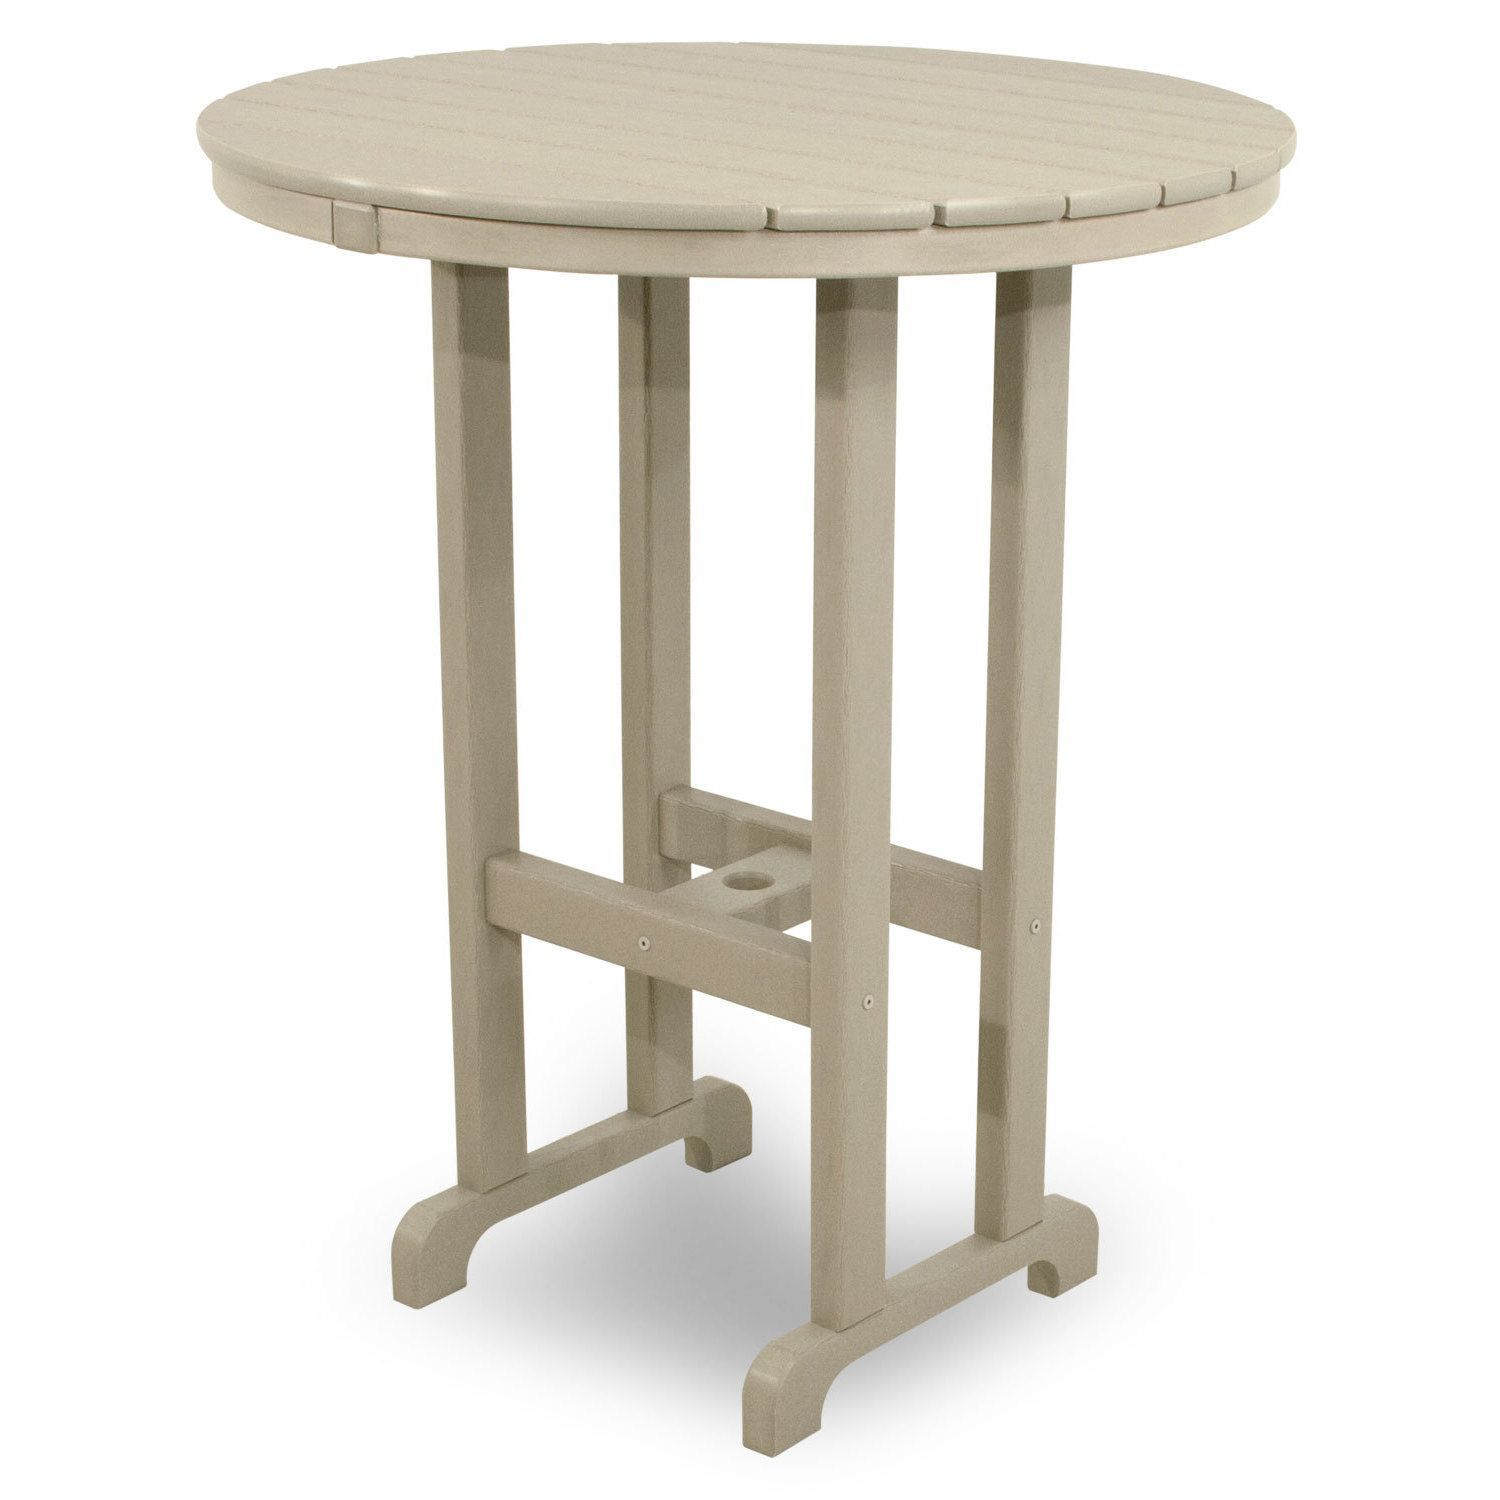 Ivy Terrace Classics Round 36 Inch Bar Table (White), Patio Furniture